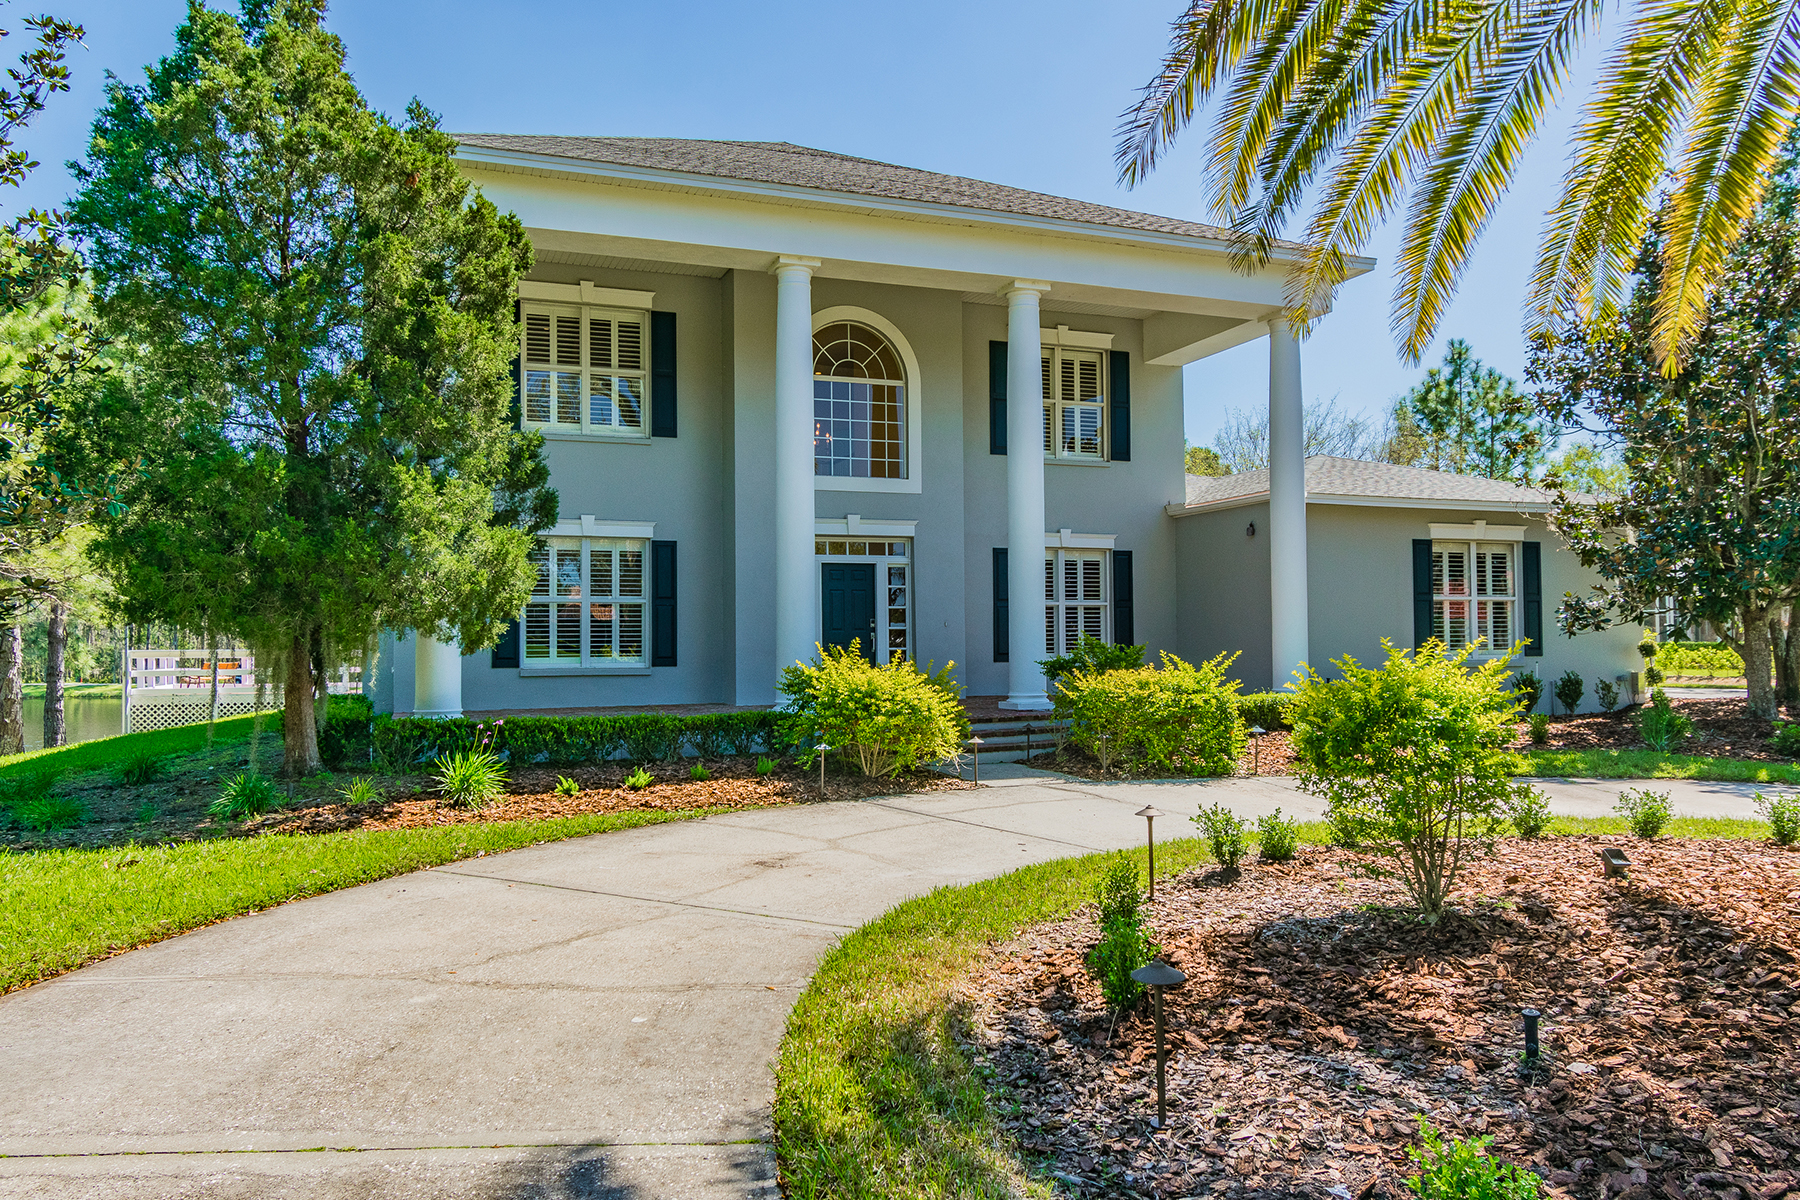 Single Family Homes for Active at 4530 Cheval Blvd Lutz, Florida 33558 United States